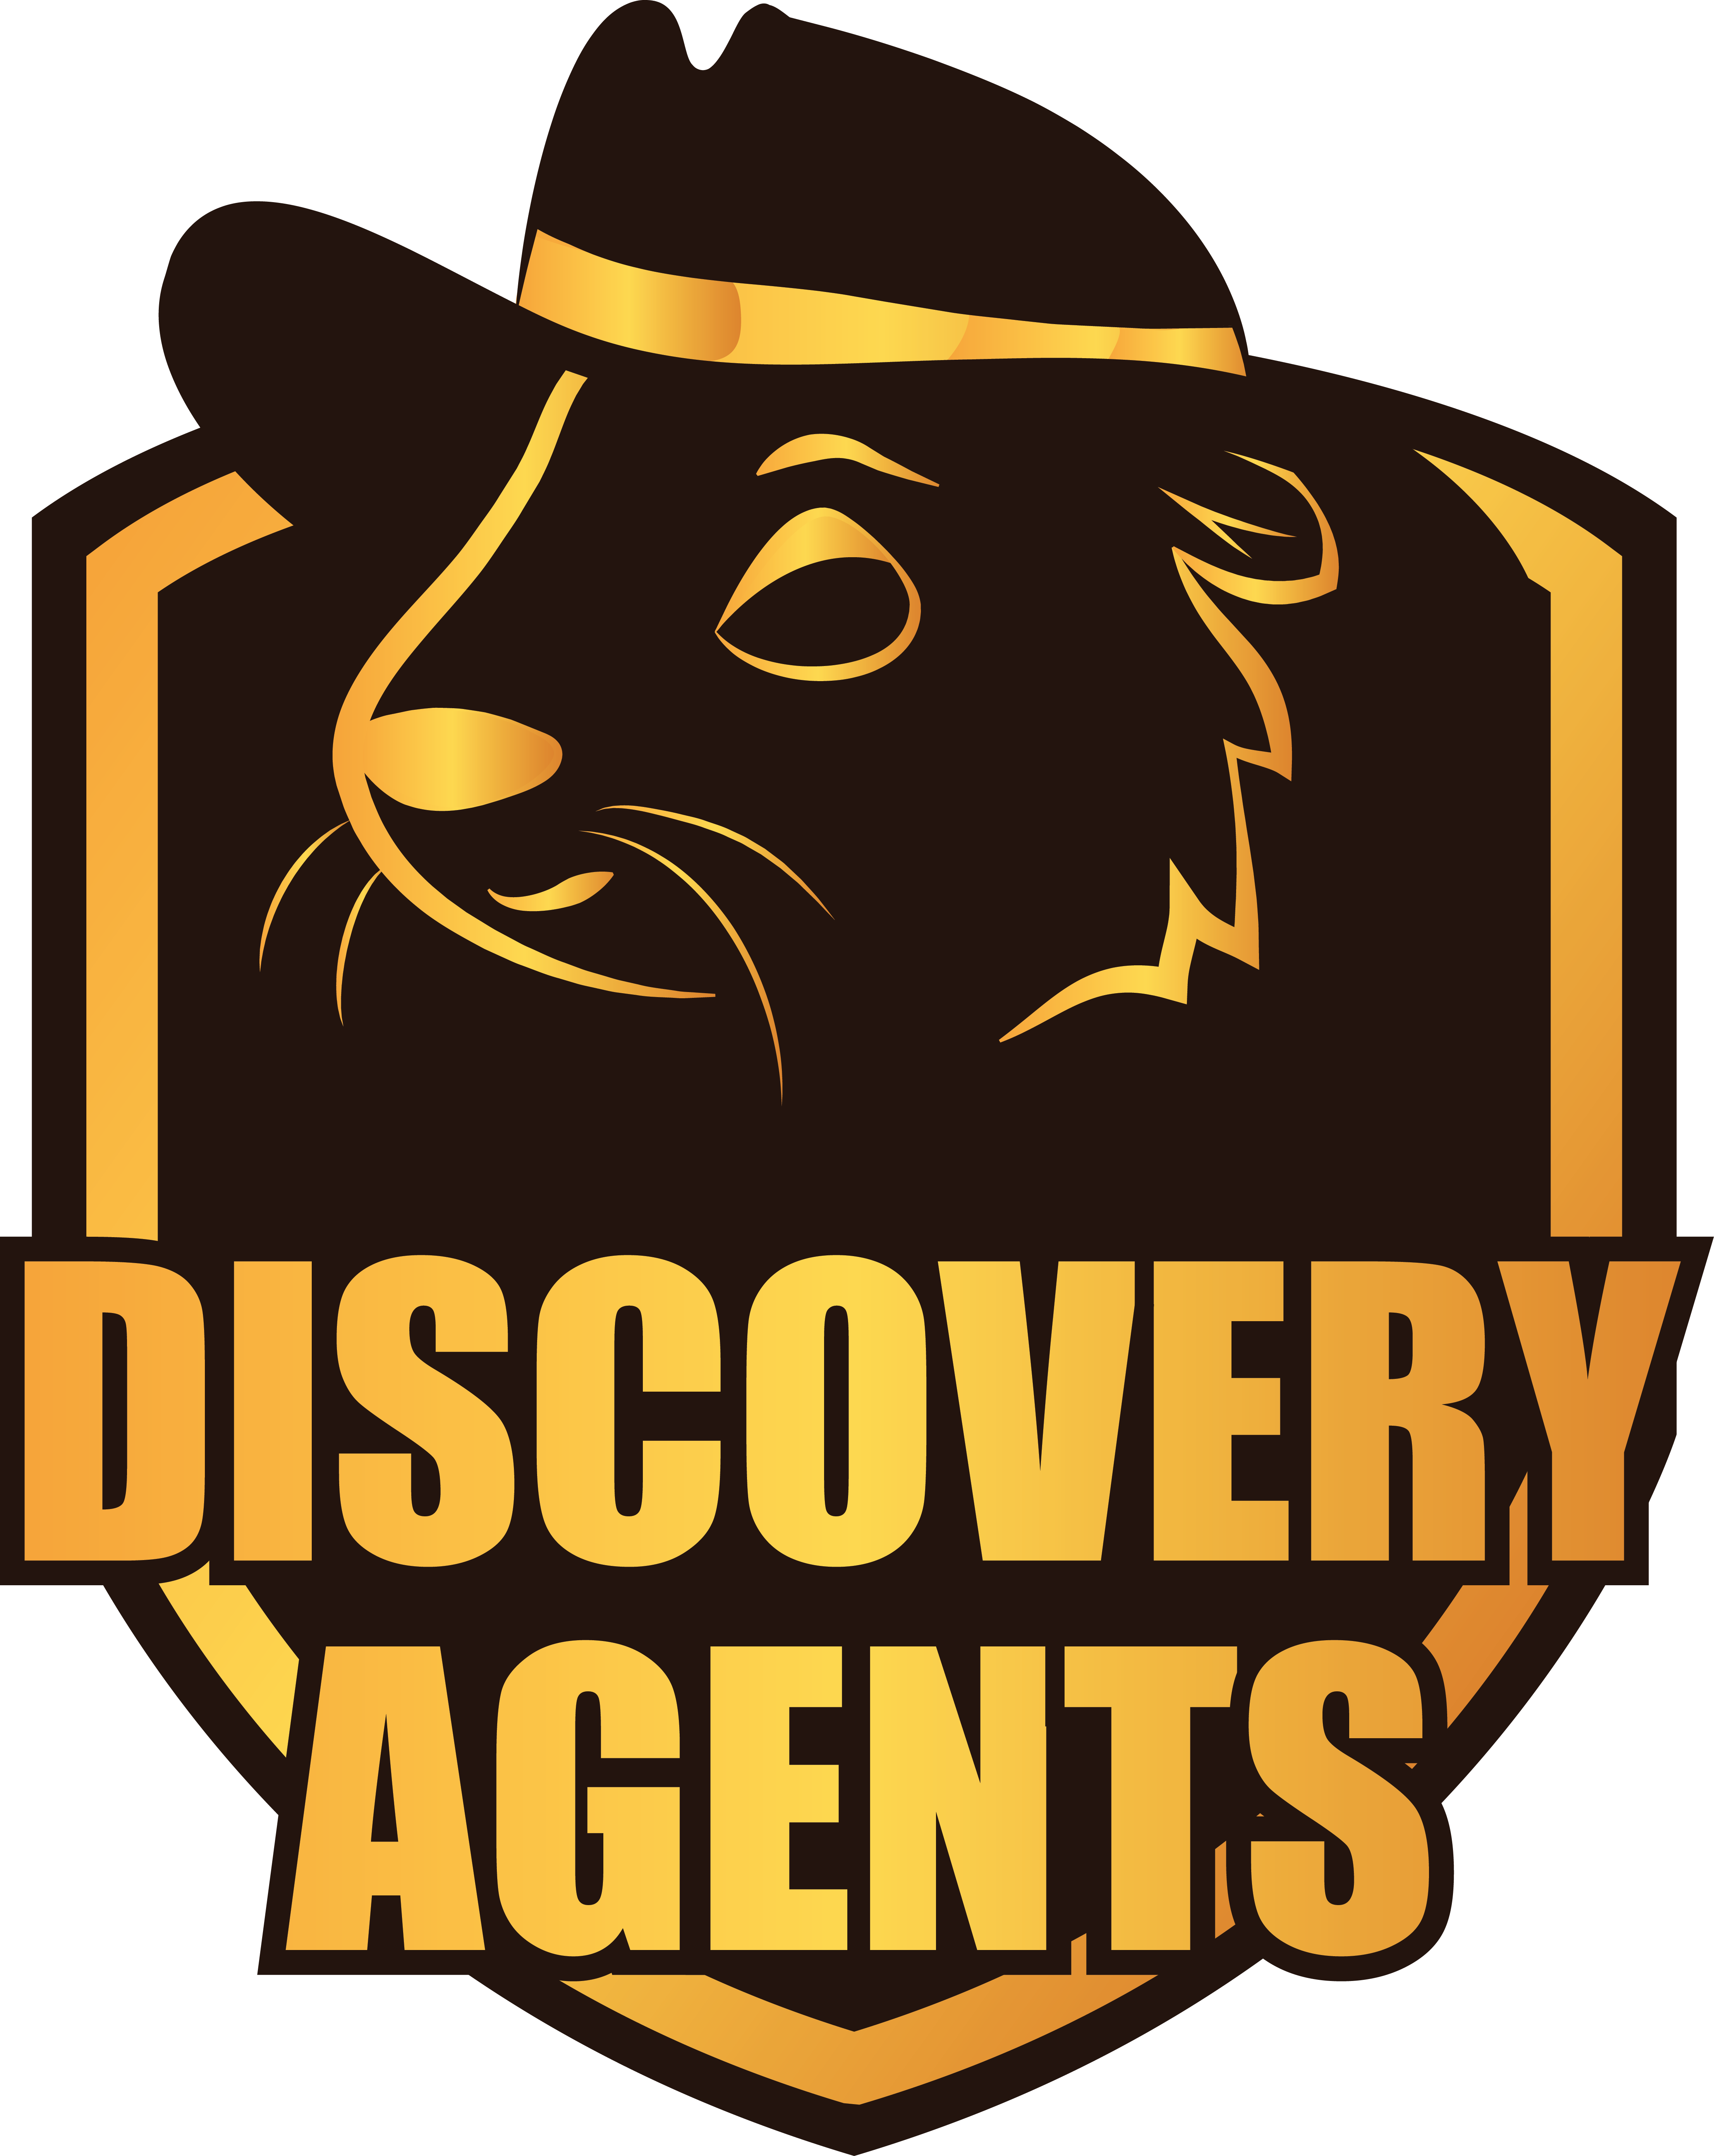 Discovery Agents illustrated icon.